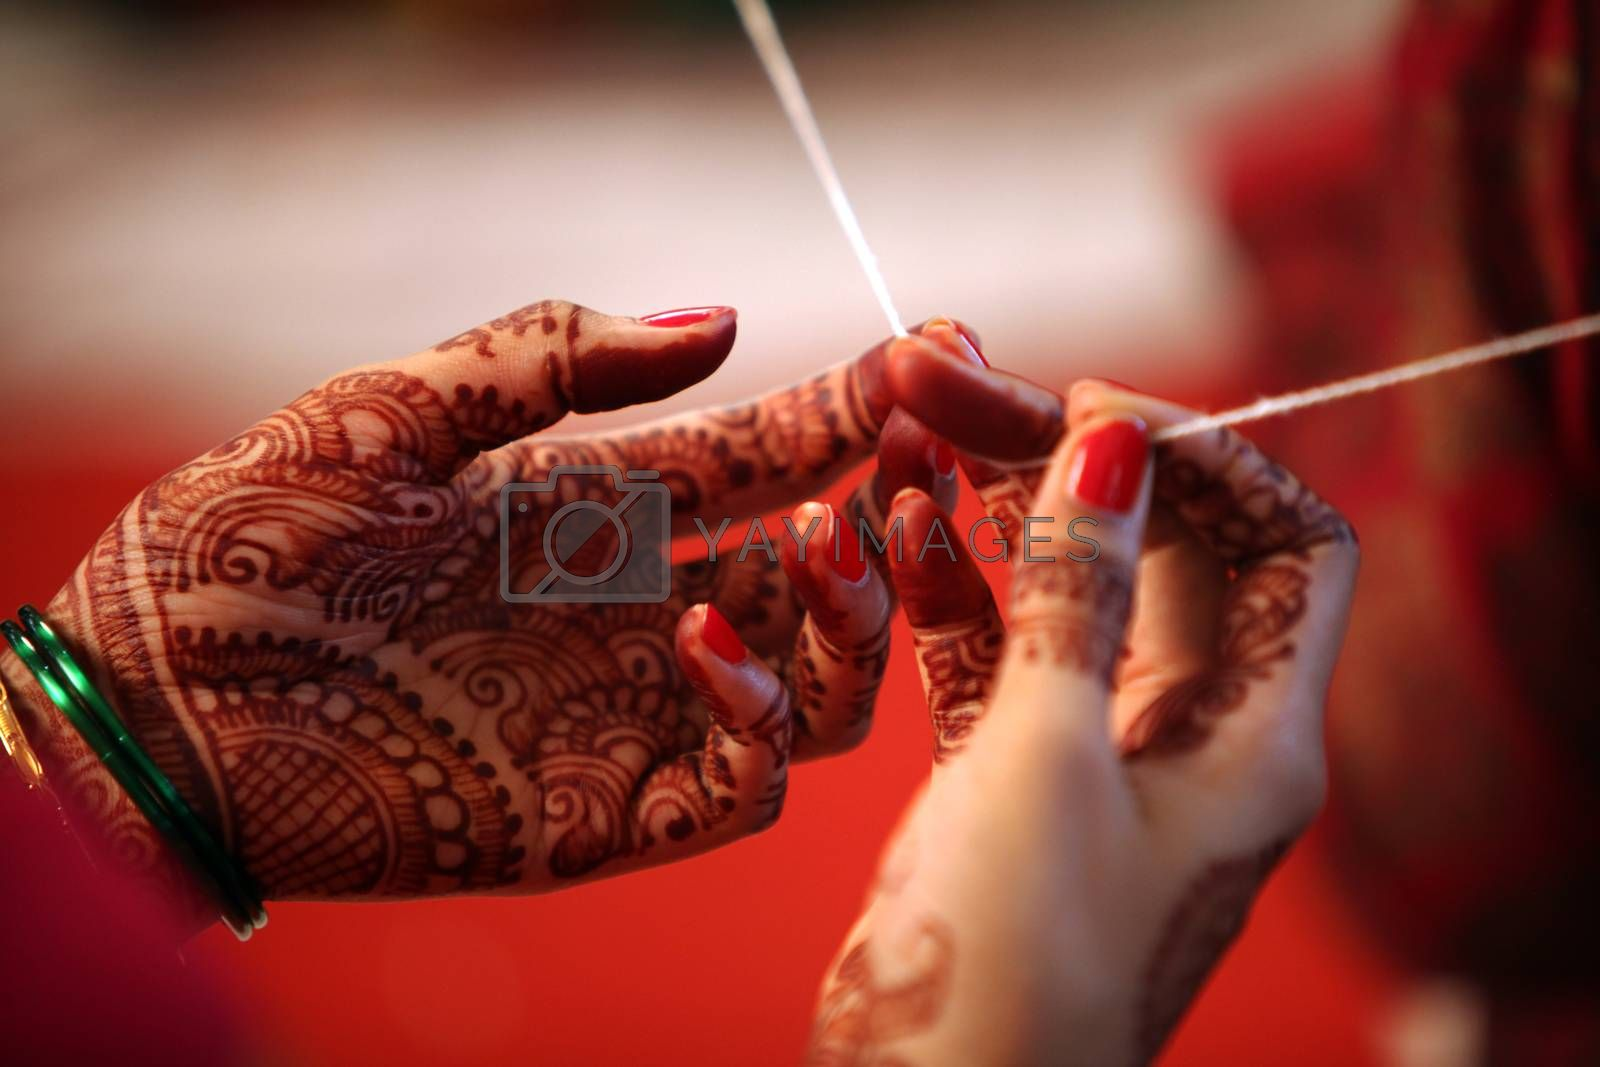 A religious thread held tight in the hands of a relative during a traditional hindu wedding ceremony.